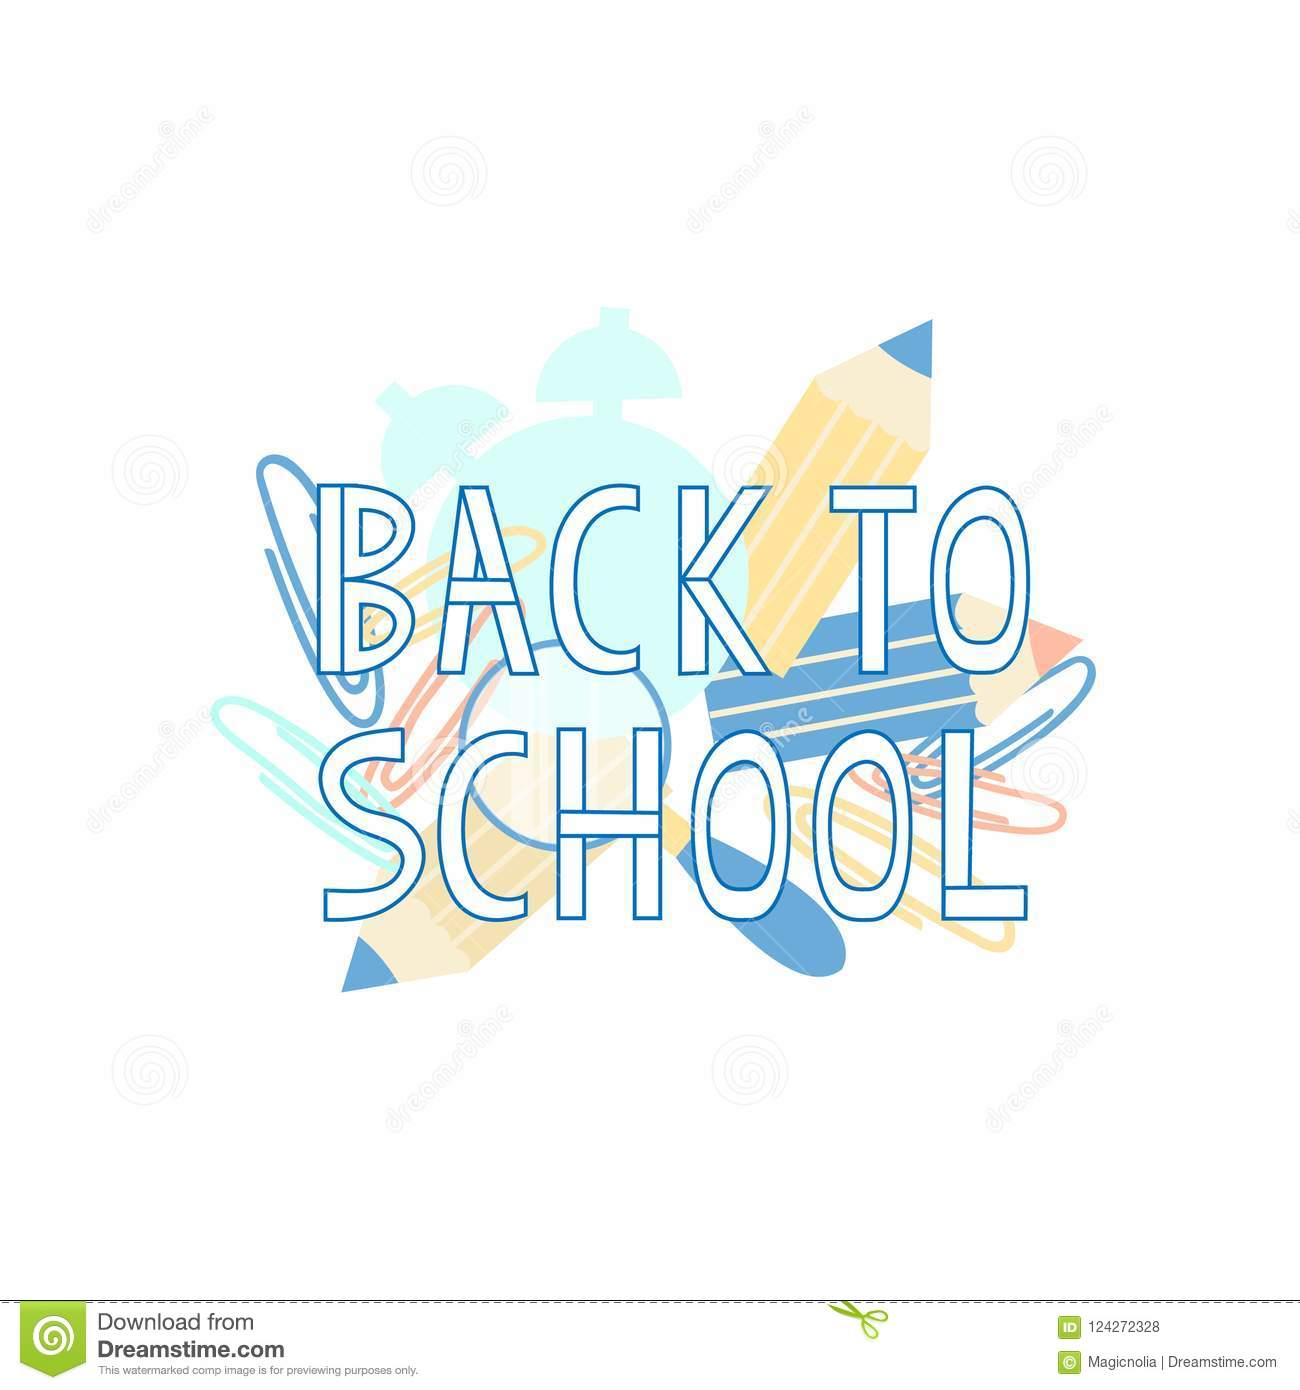 Back to school text with school supplies elements typography design download back to school text with school supplies elements typography design for greeting cards m4hsunfo